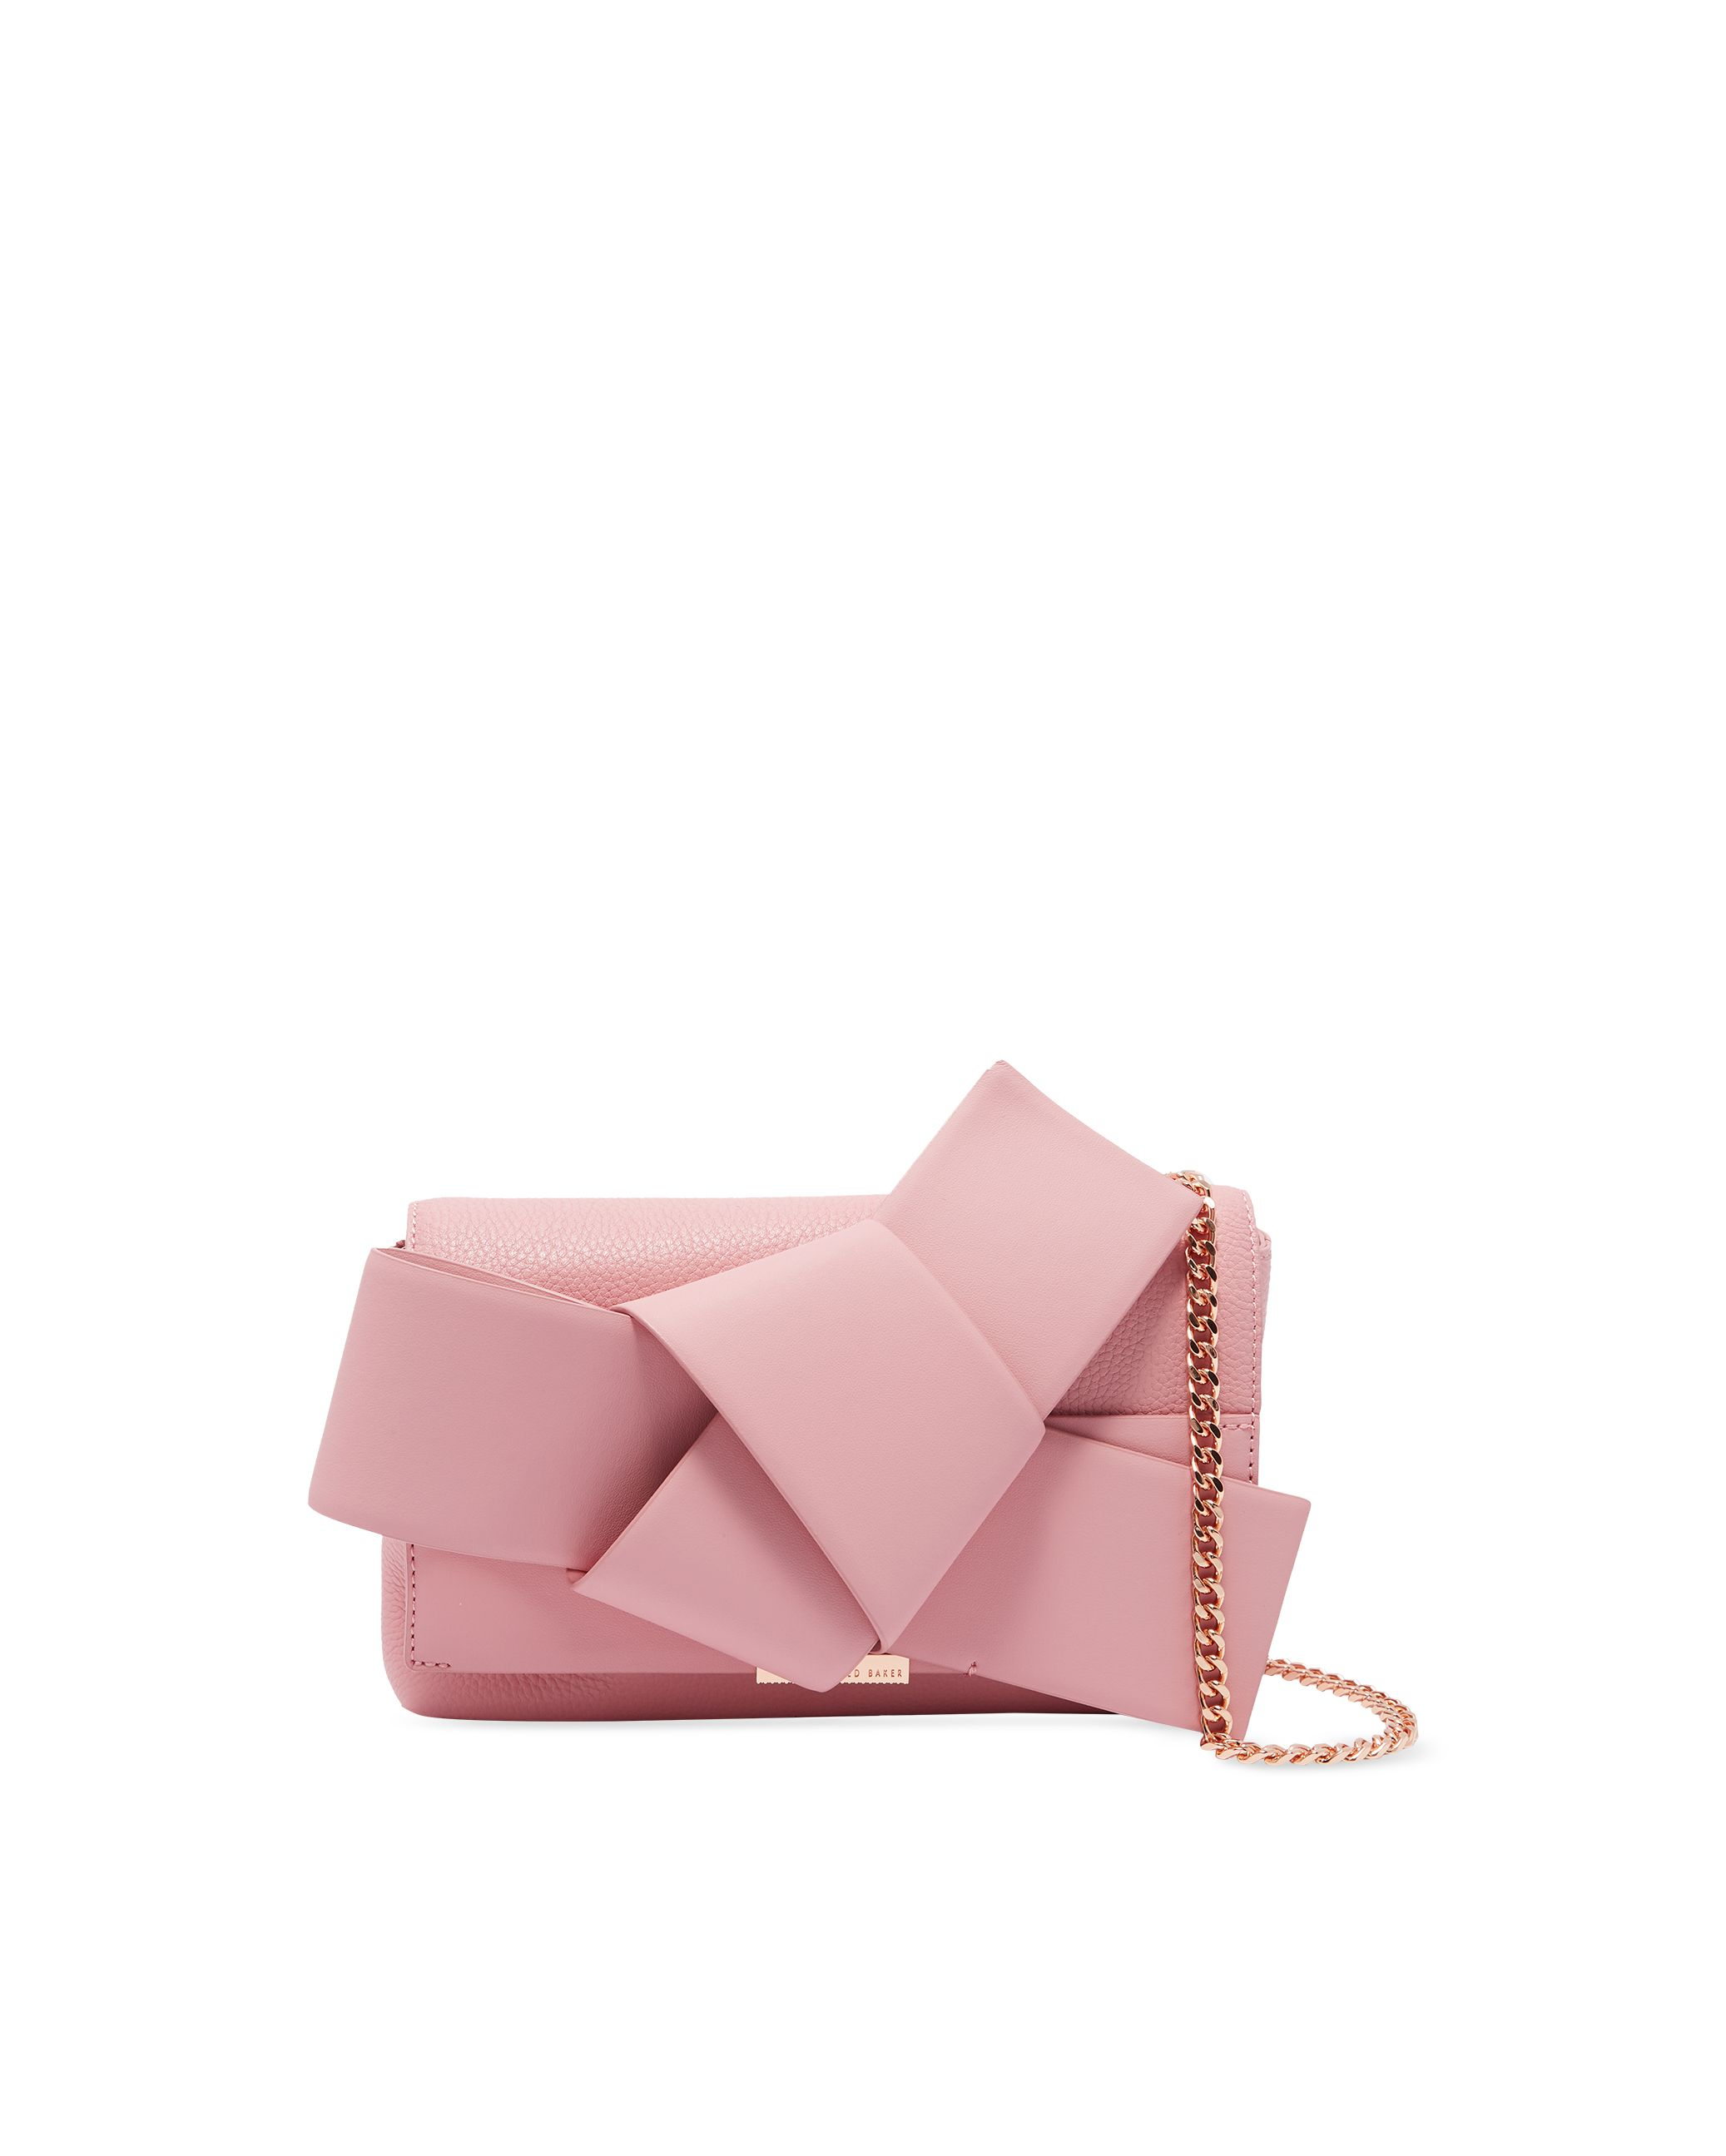 Ted Baker Agentah Knot Bow Xbody Bag, Dusty Pink